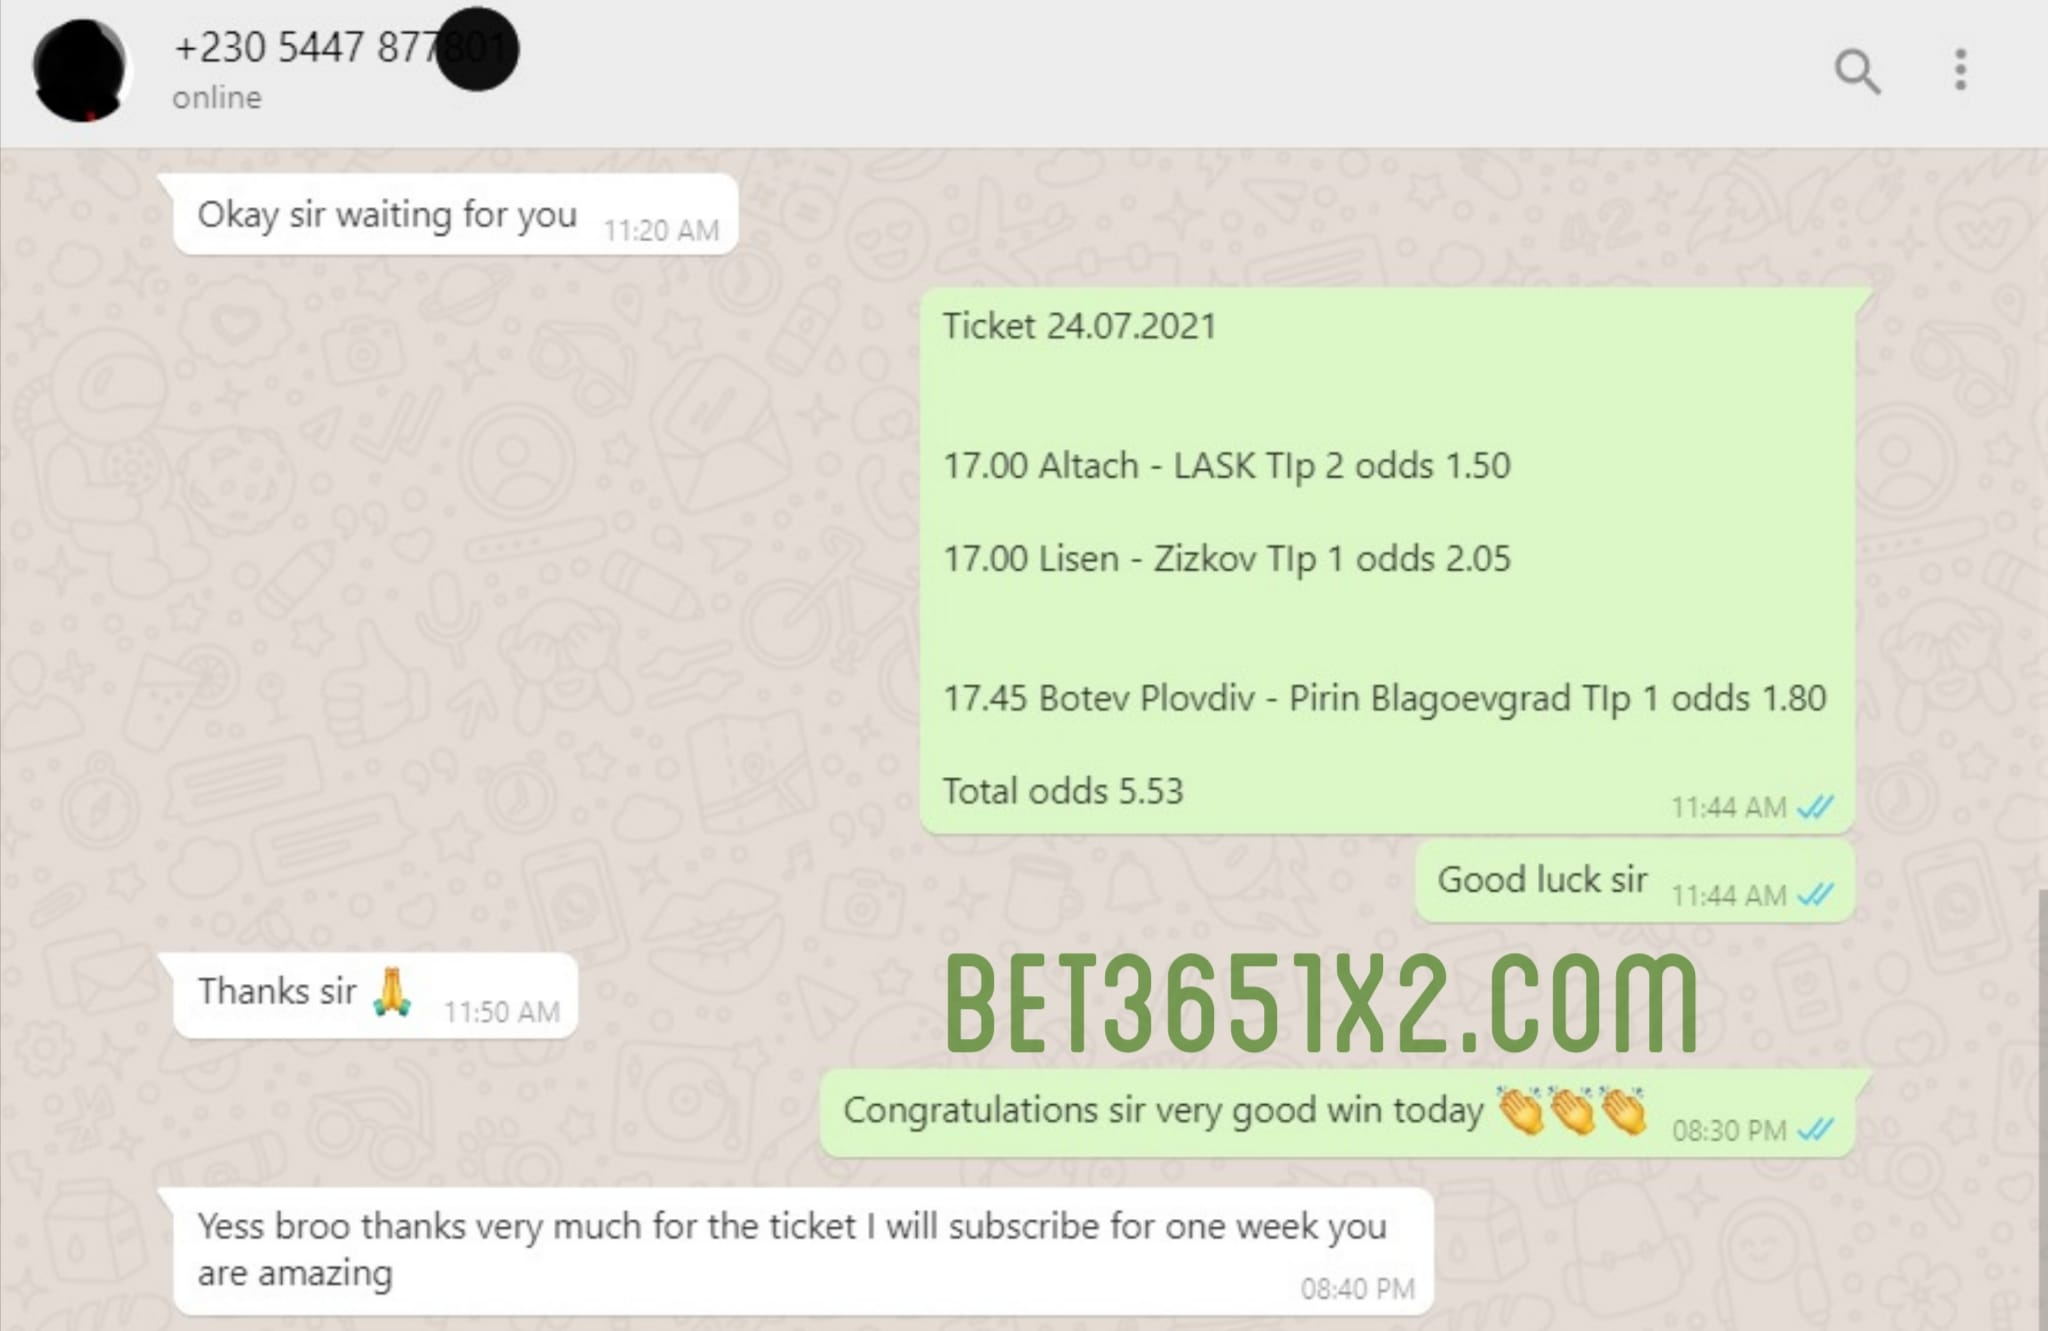 ticket, sure, fixed, bets, 100%